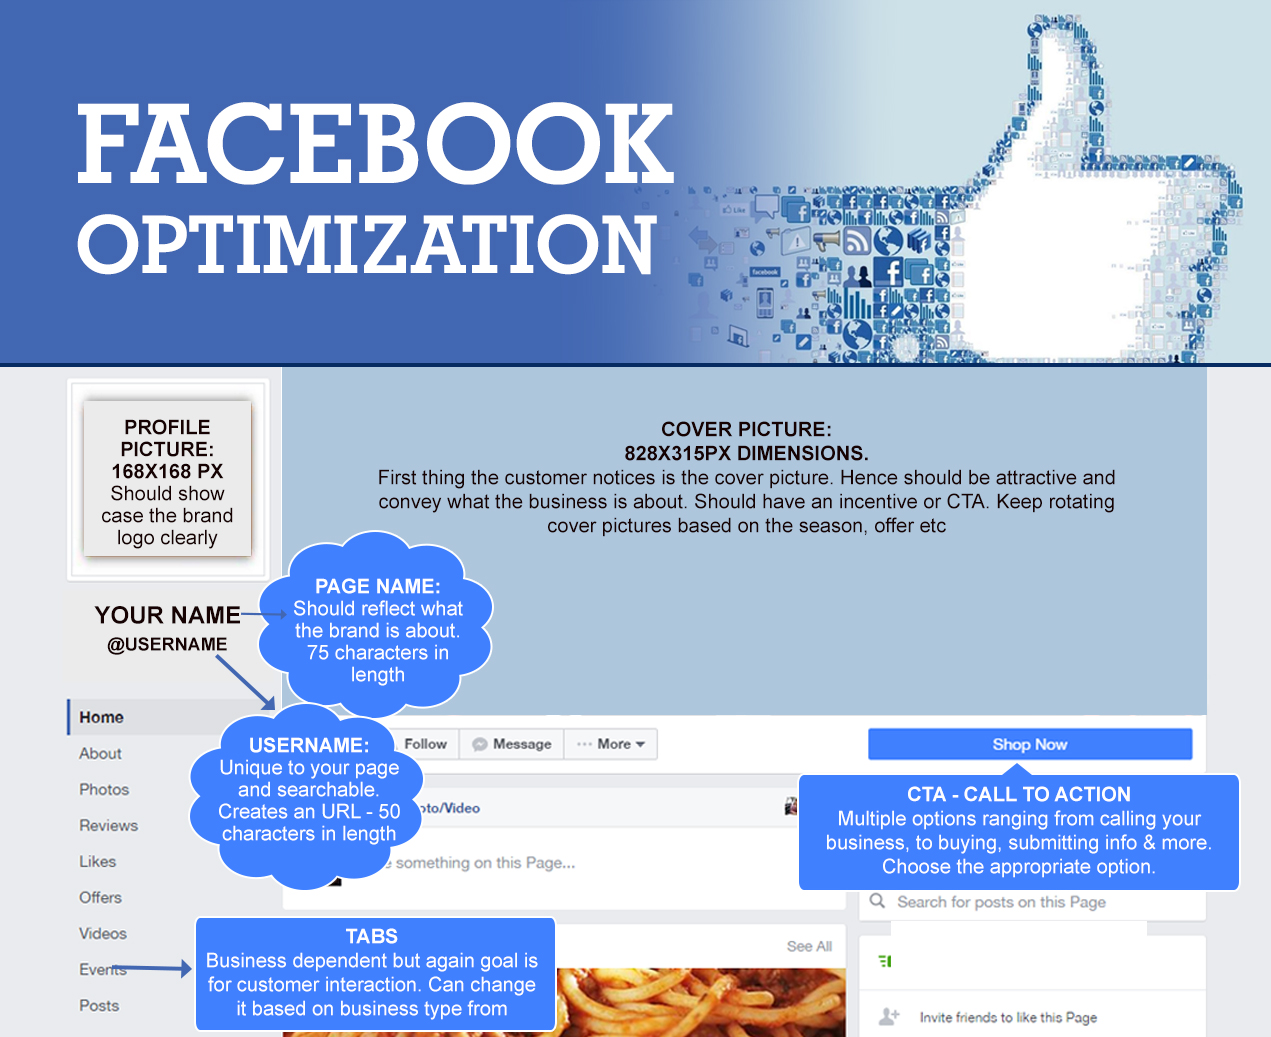 Facebook Optimization- Effective Ways To Use Facebook for Business